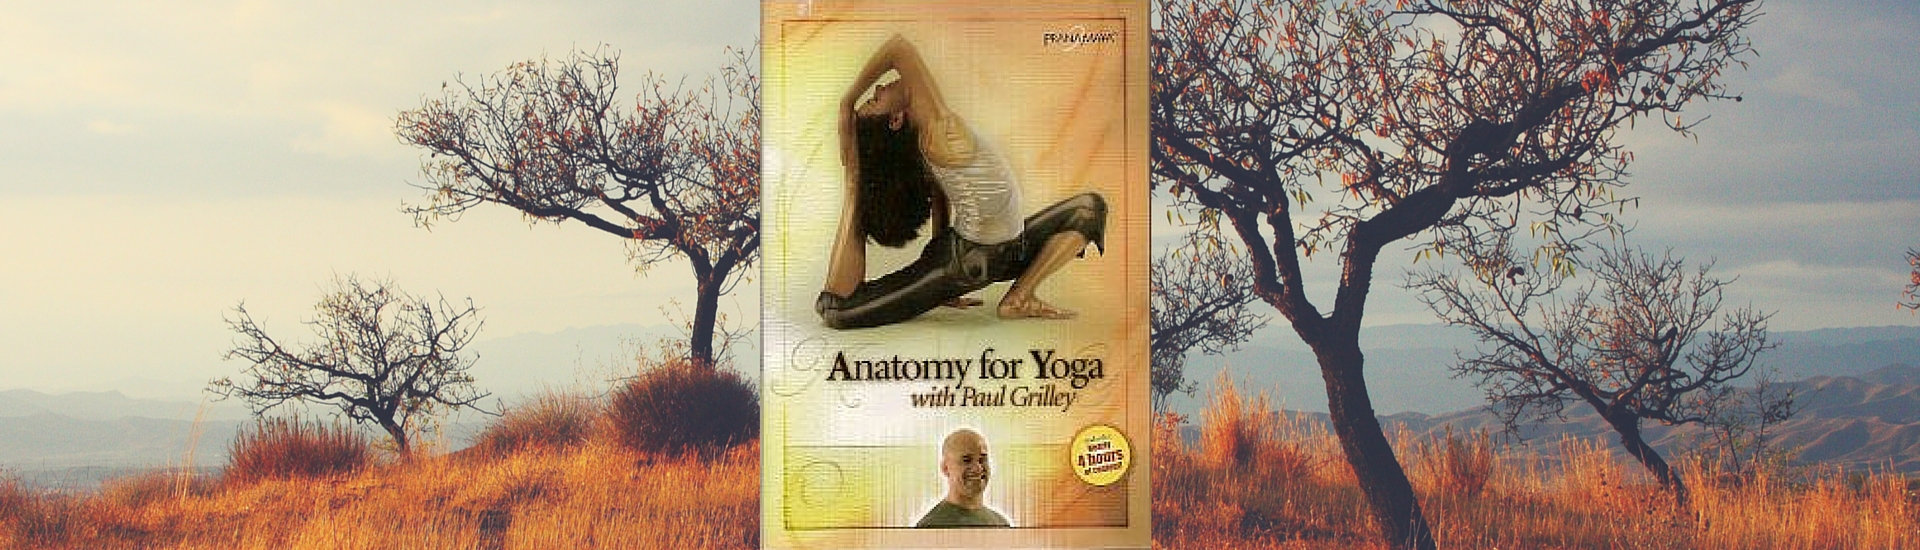 DVD Review: Anatomy for Yoga with Paul Grilley. Tension, Compression...